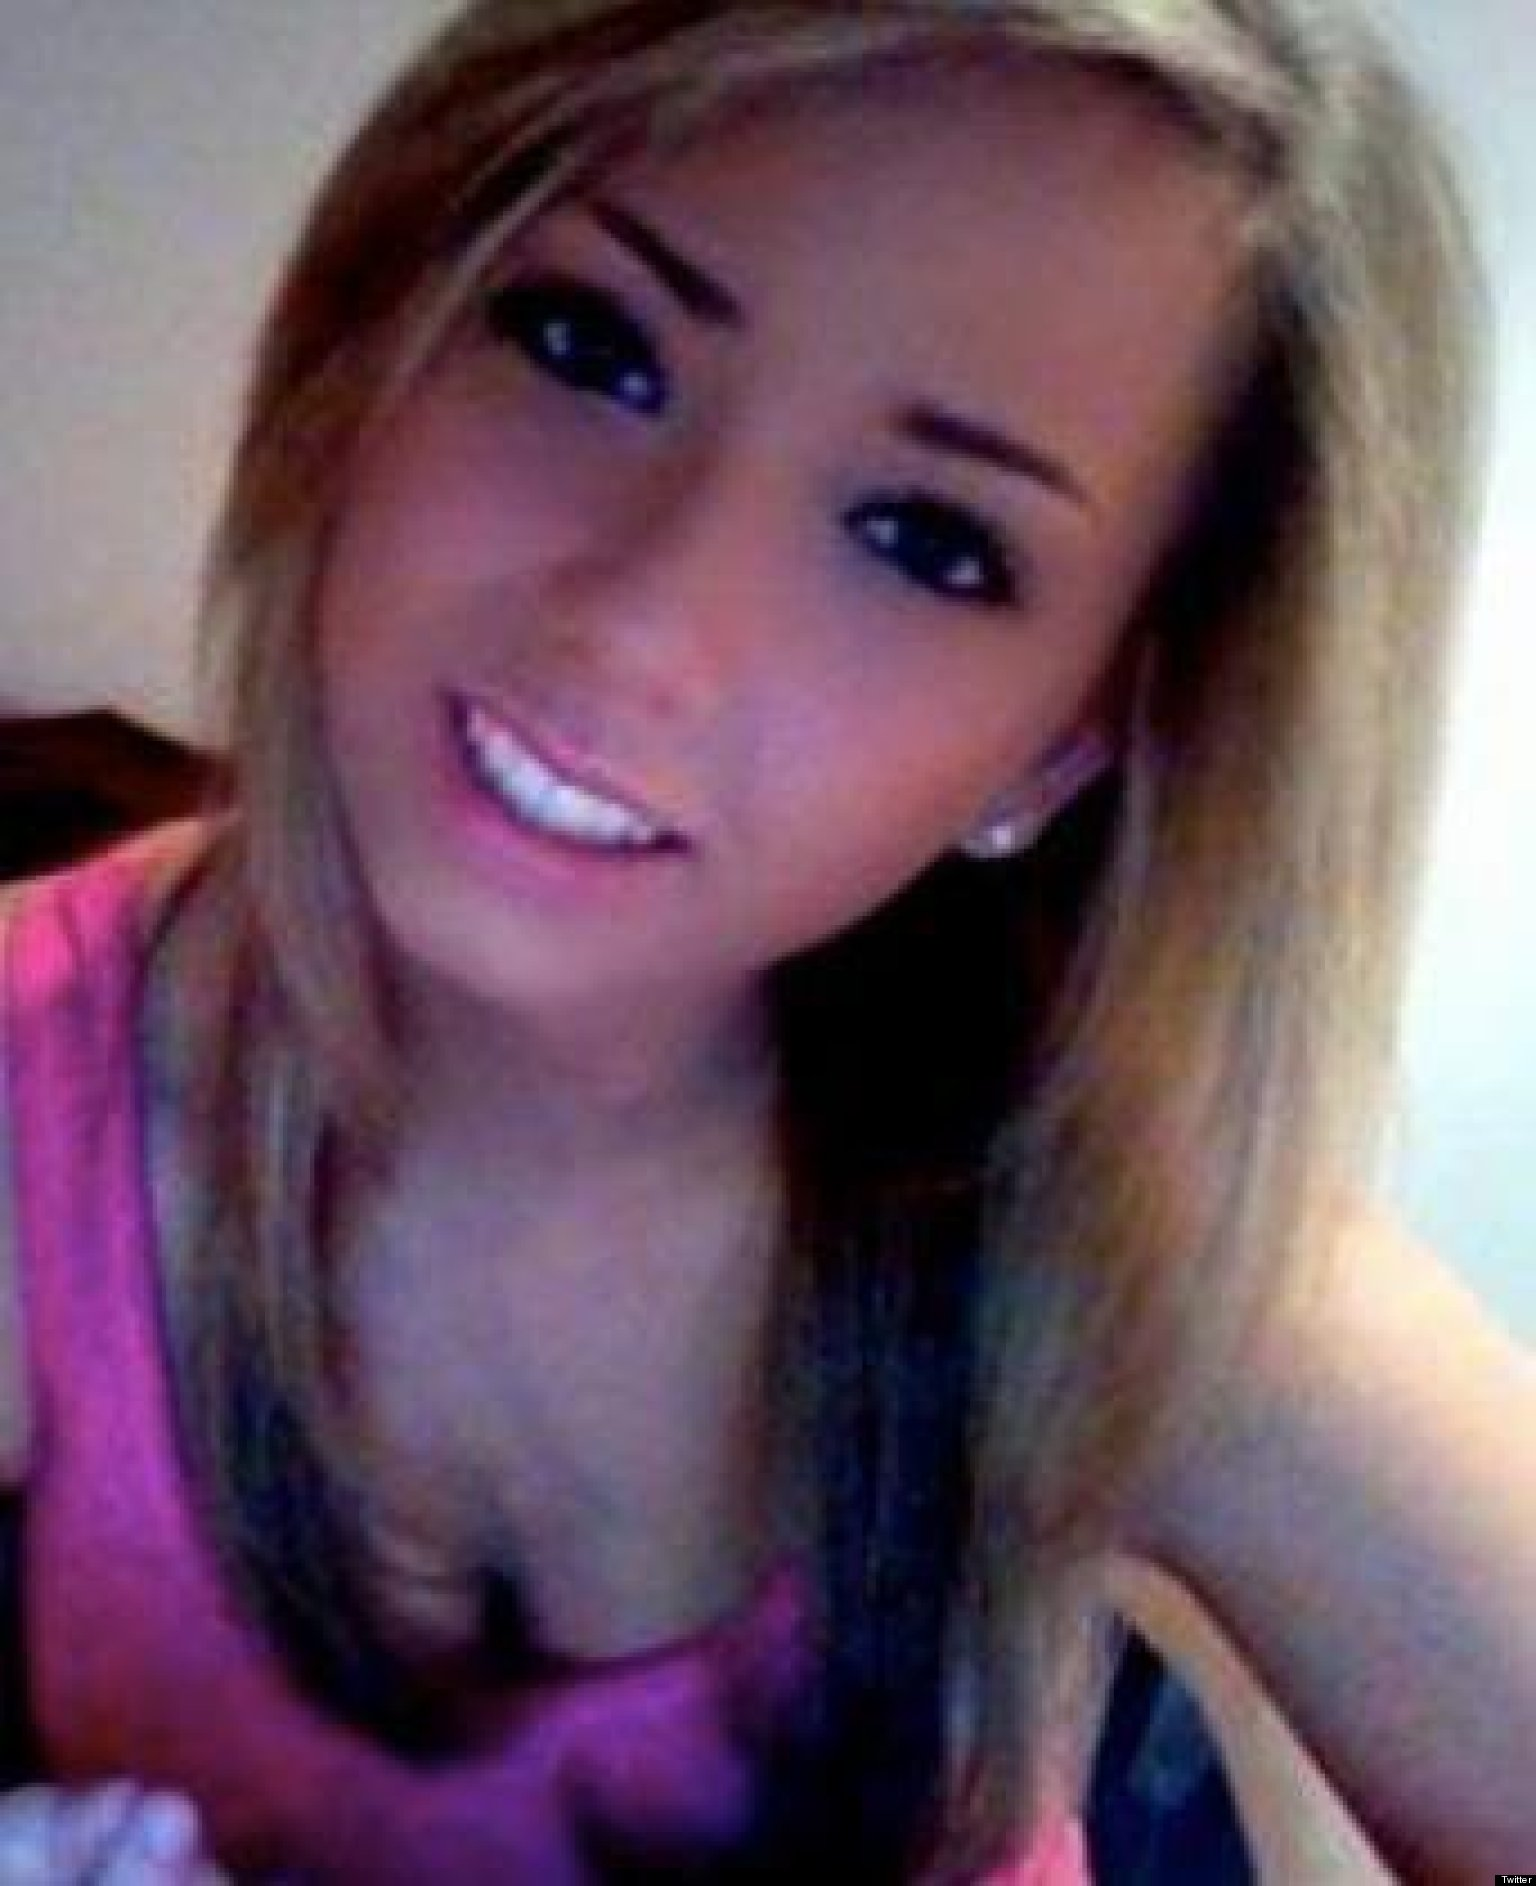 Eminem's Daughter? Will The Real Hailie Scott Please Stand Up ...